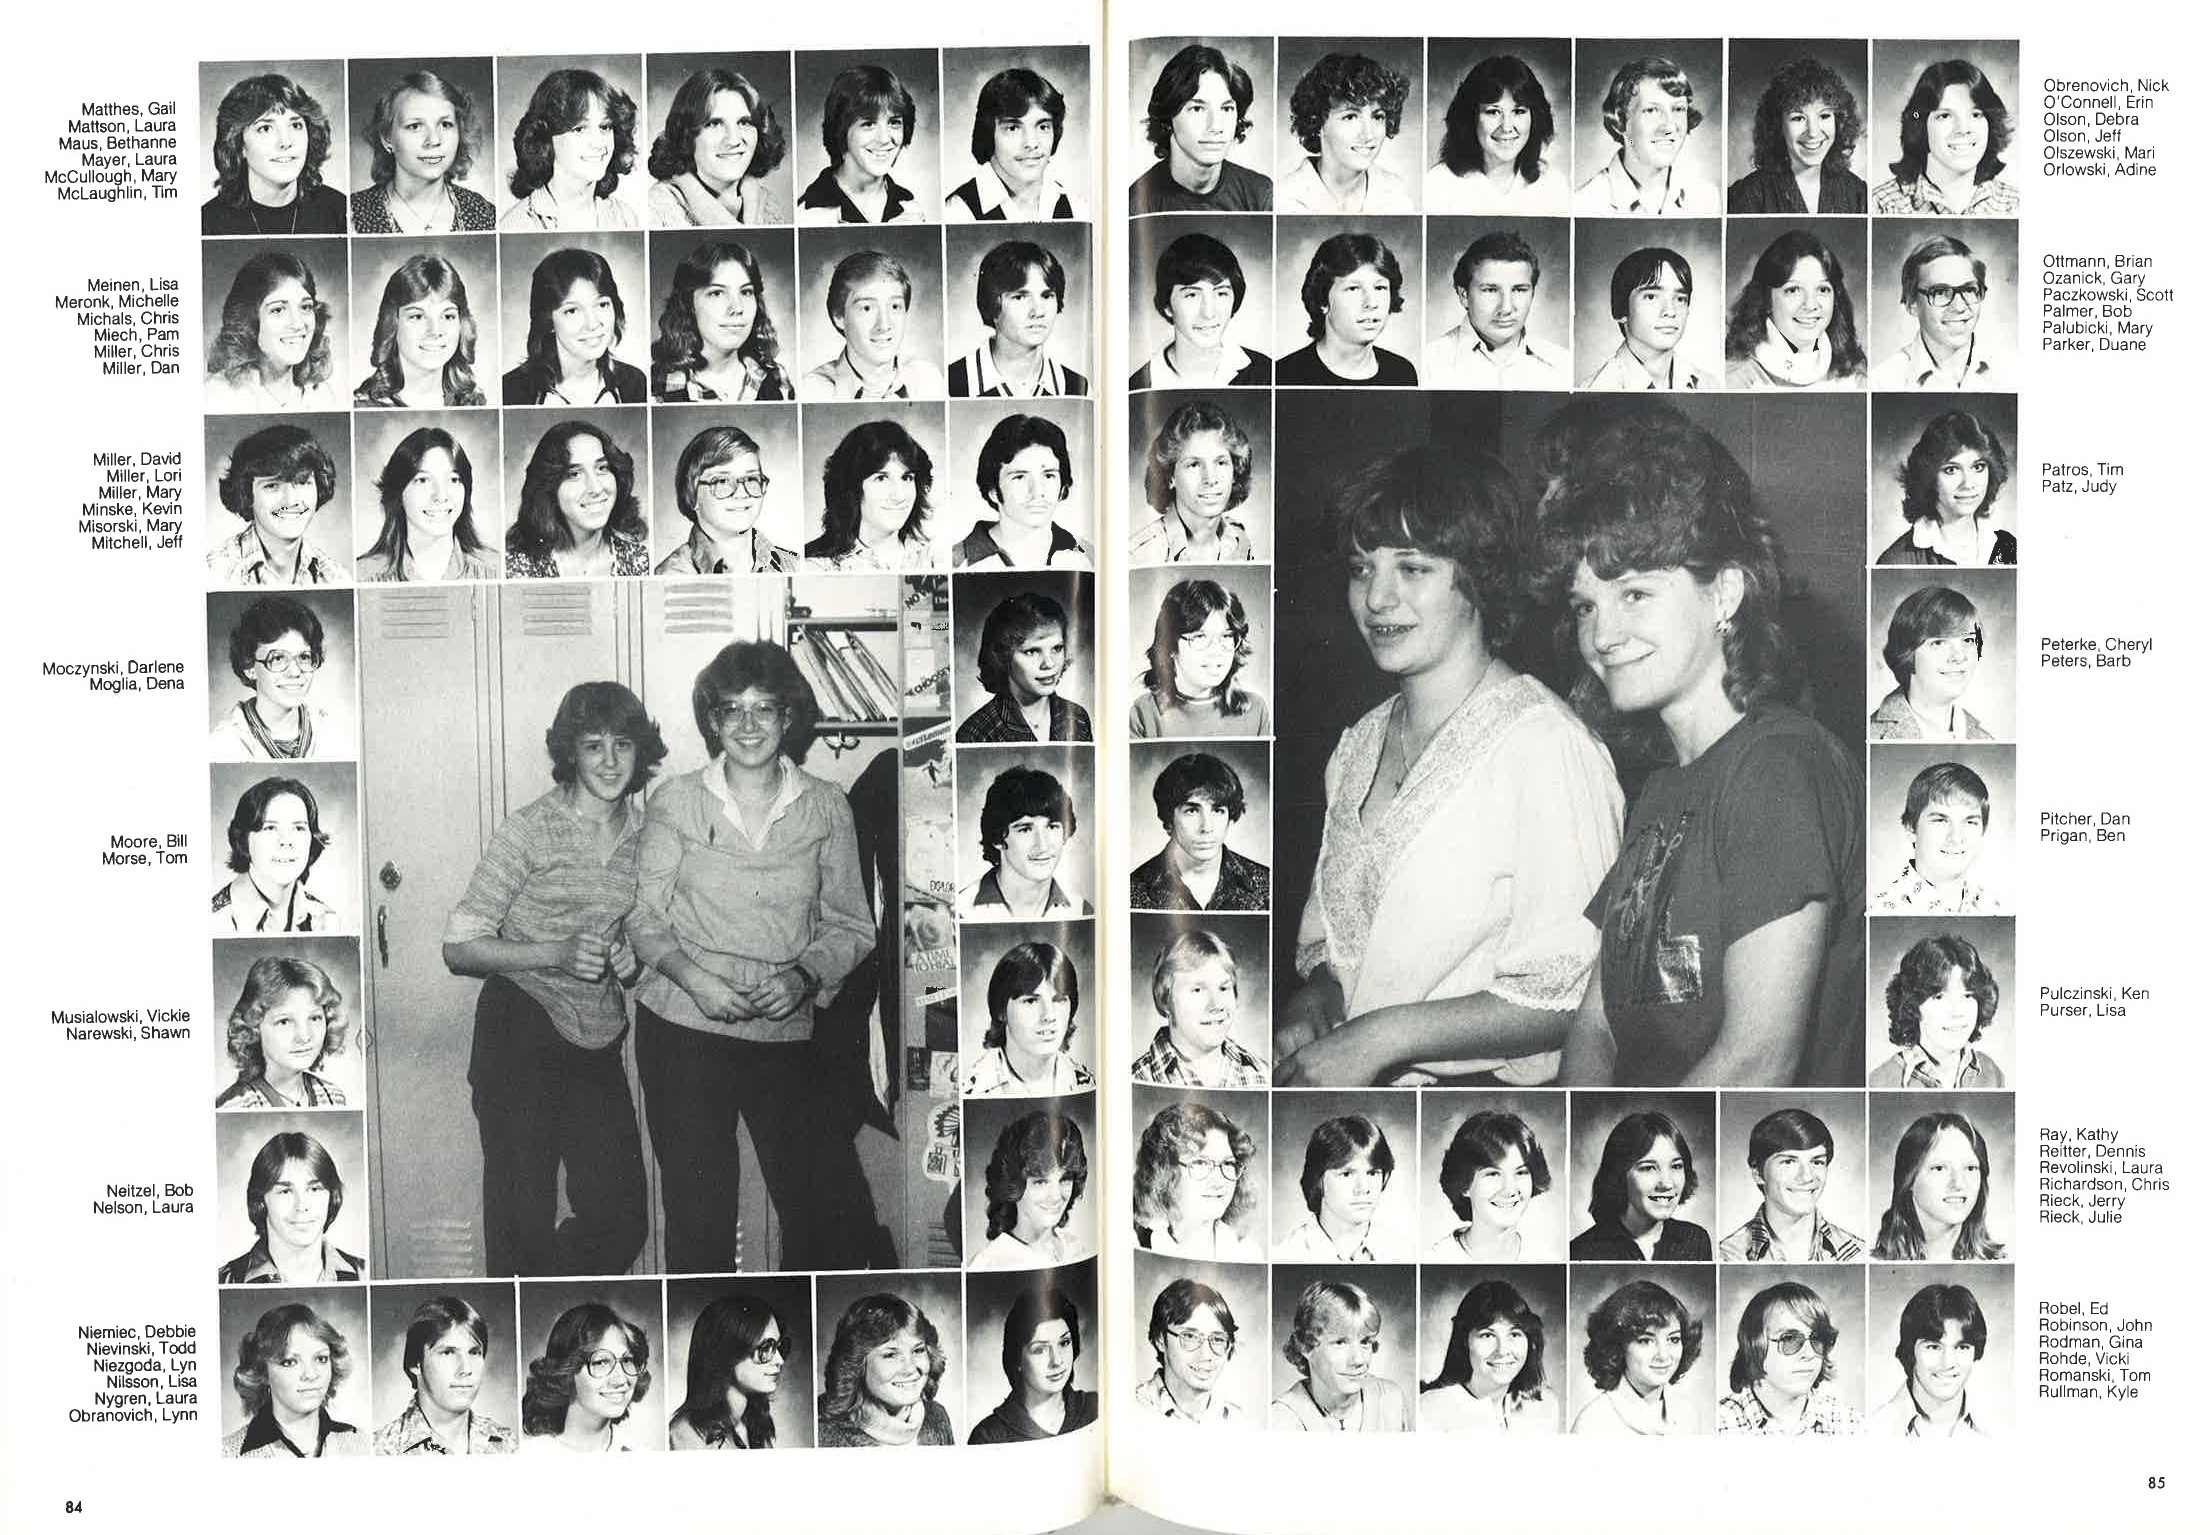 1980_Yearbook_84.jpg